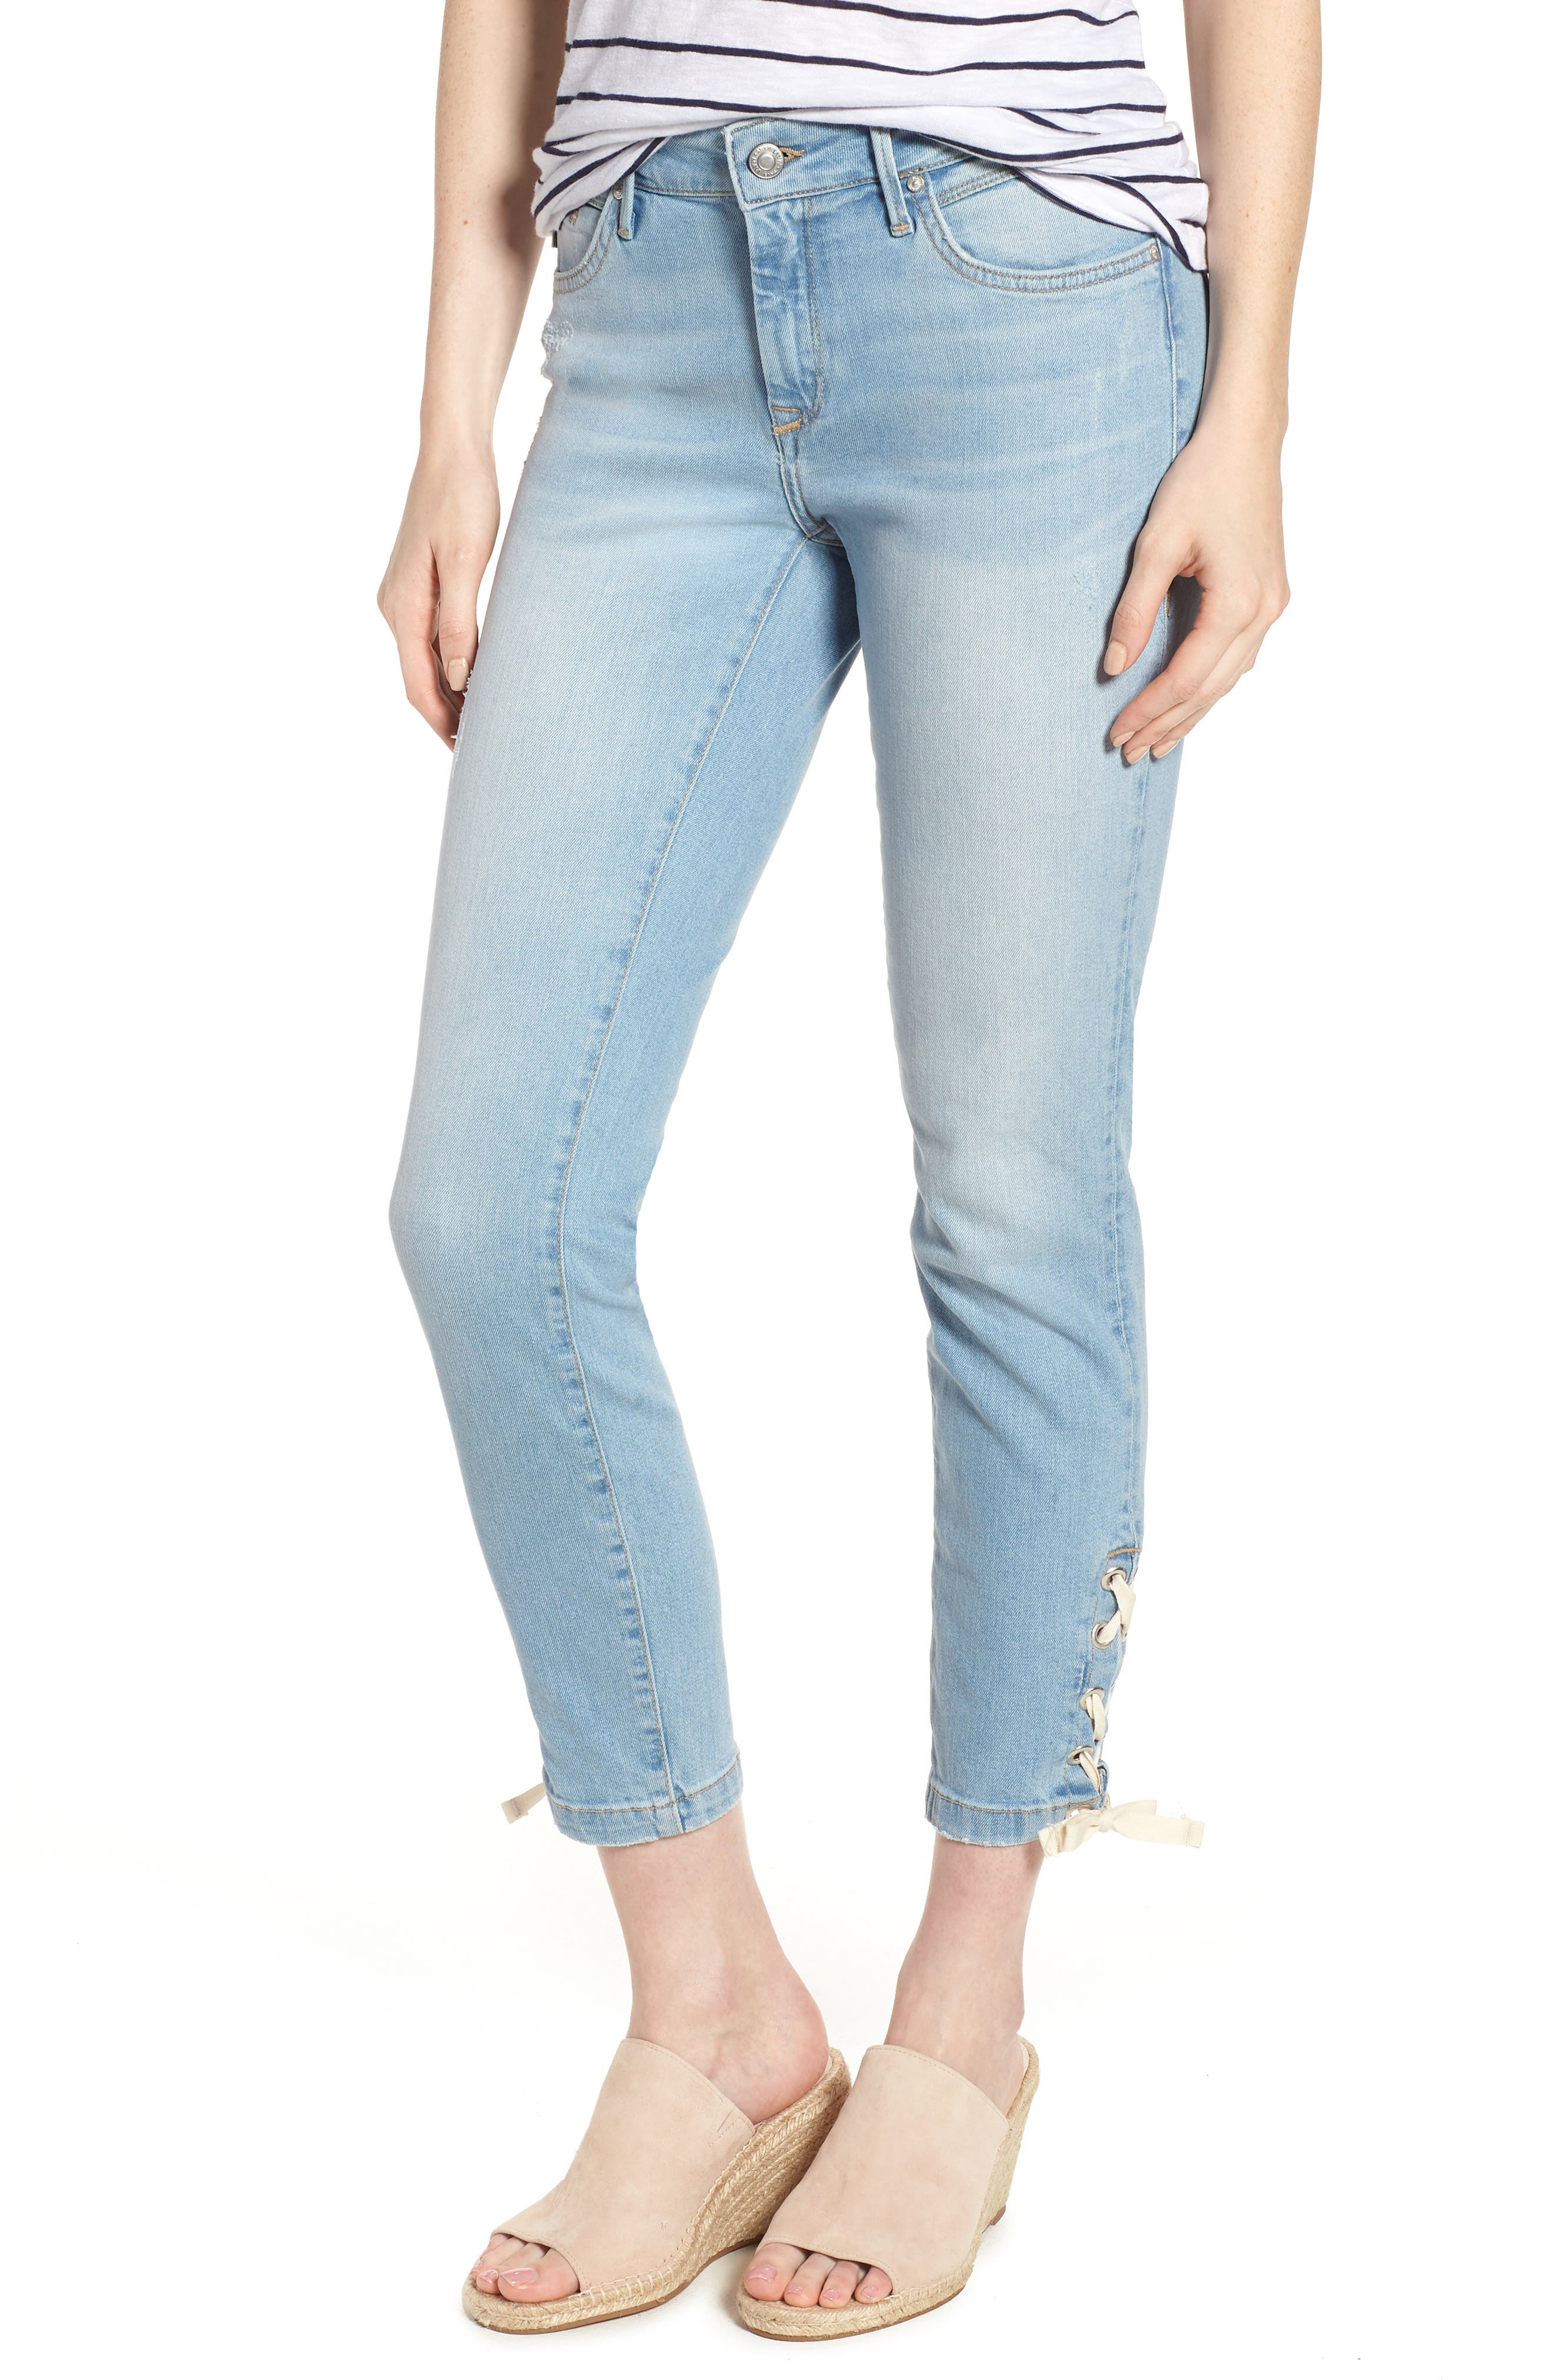 Adriana Laced Ankle Skinny Jeans,                         Main,                         color, Bleach Summer Lace